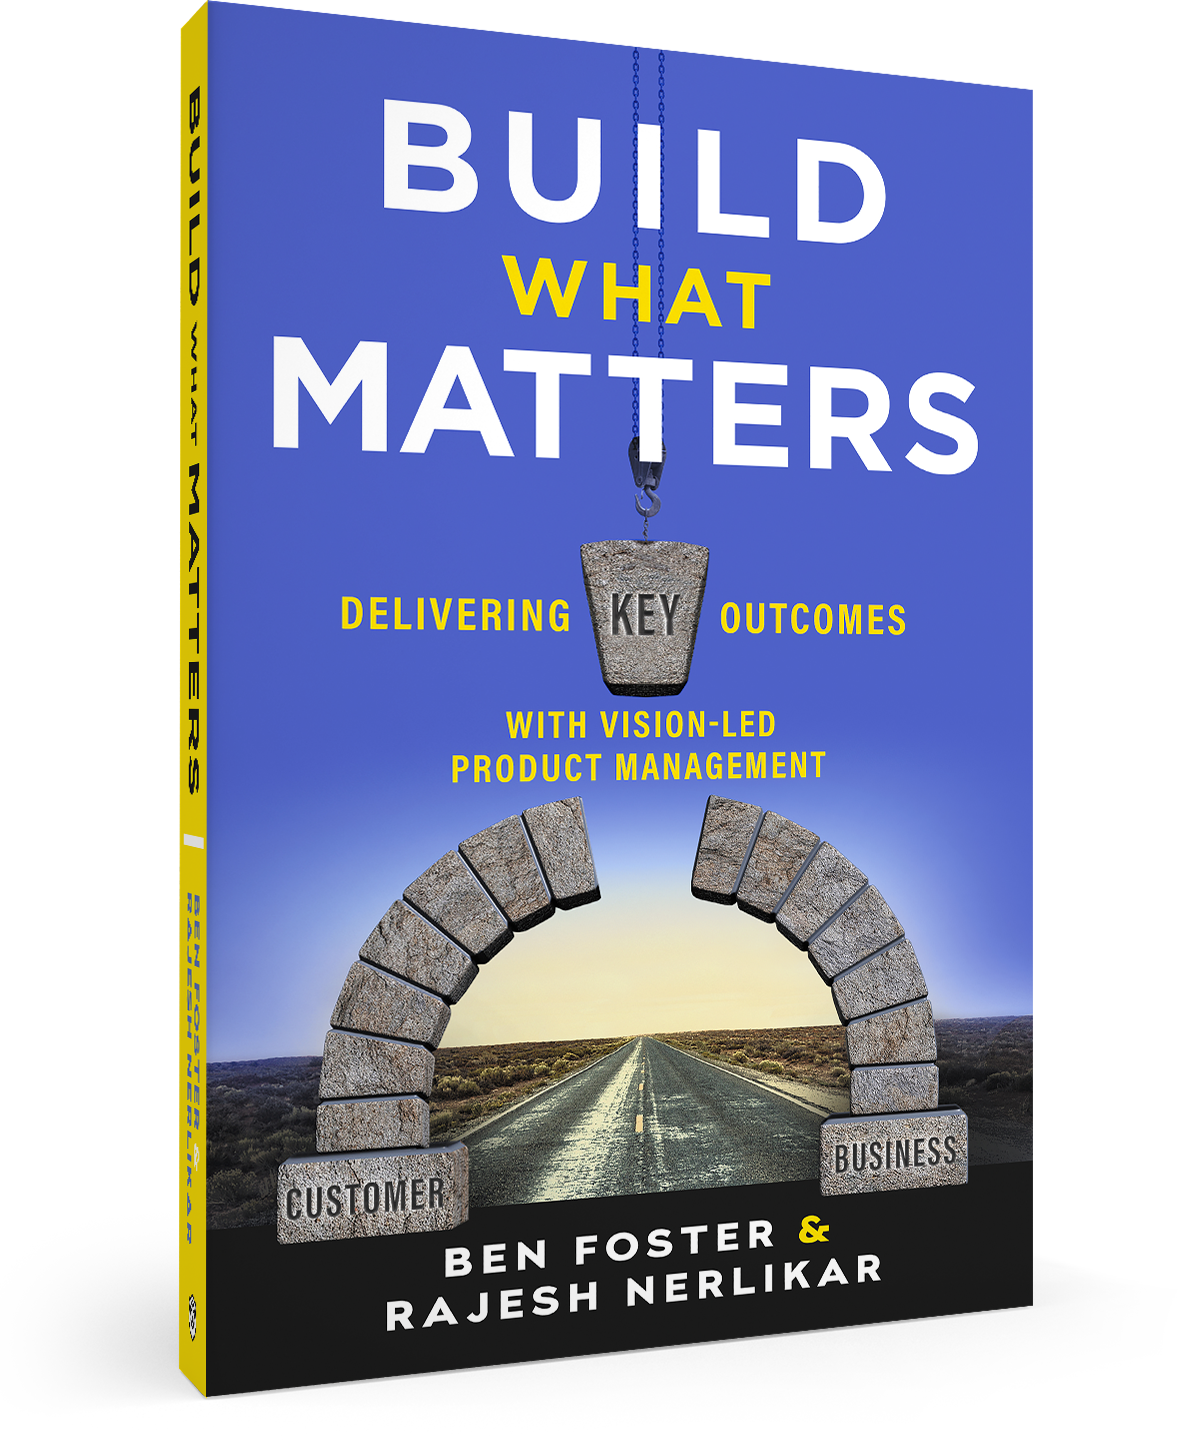 Build What Matters